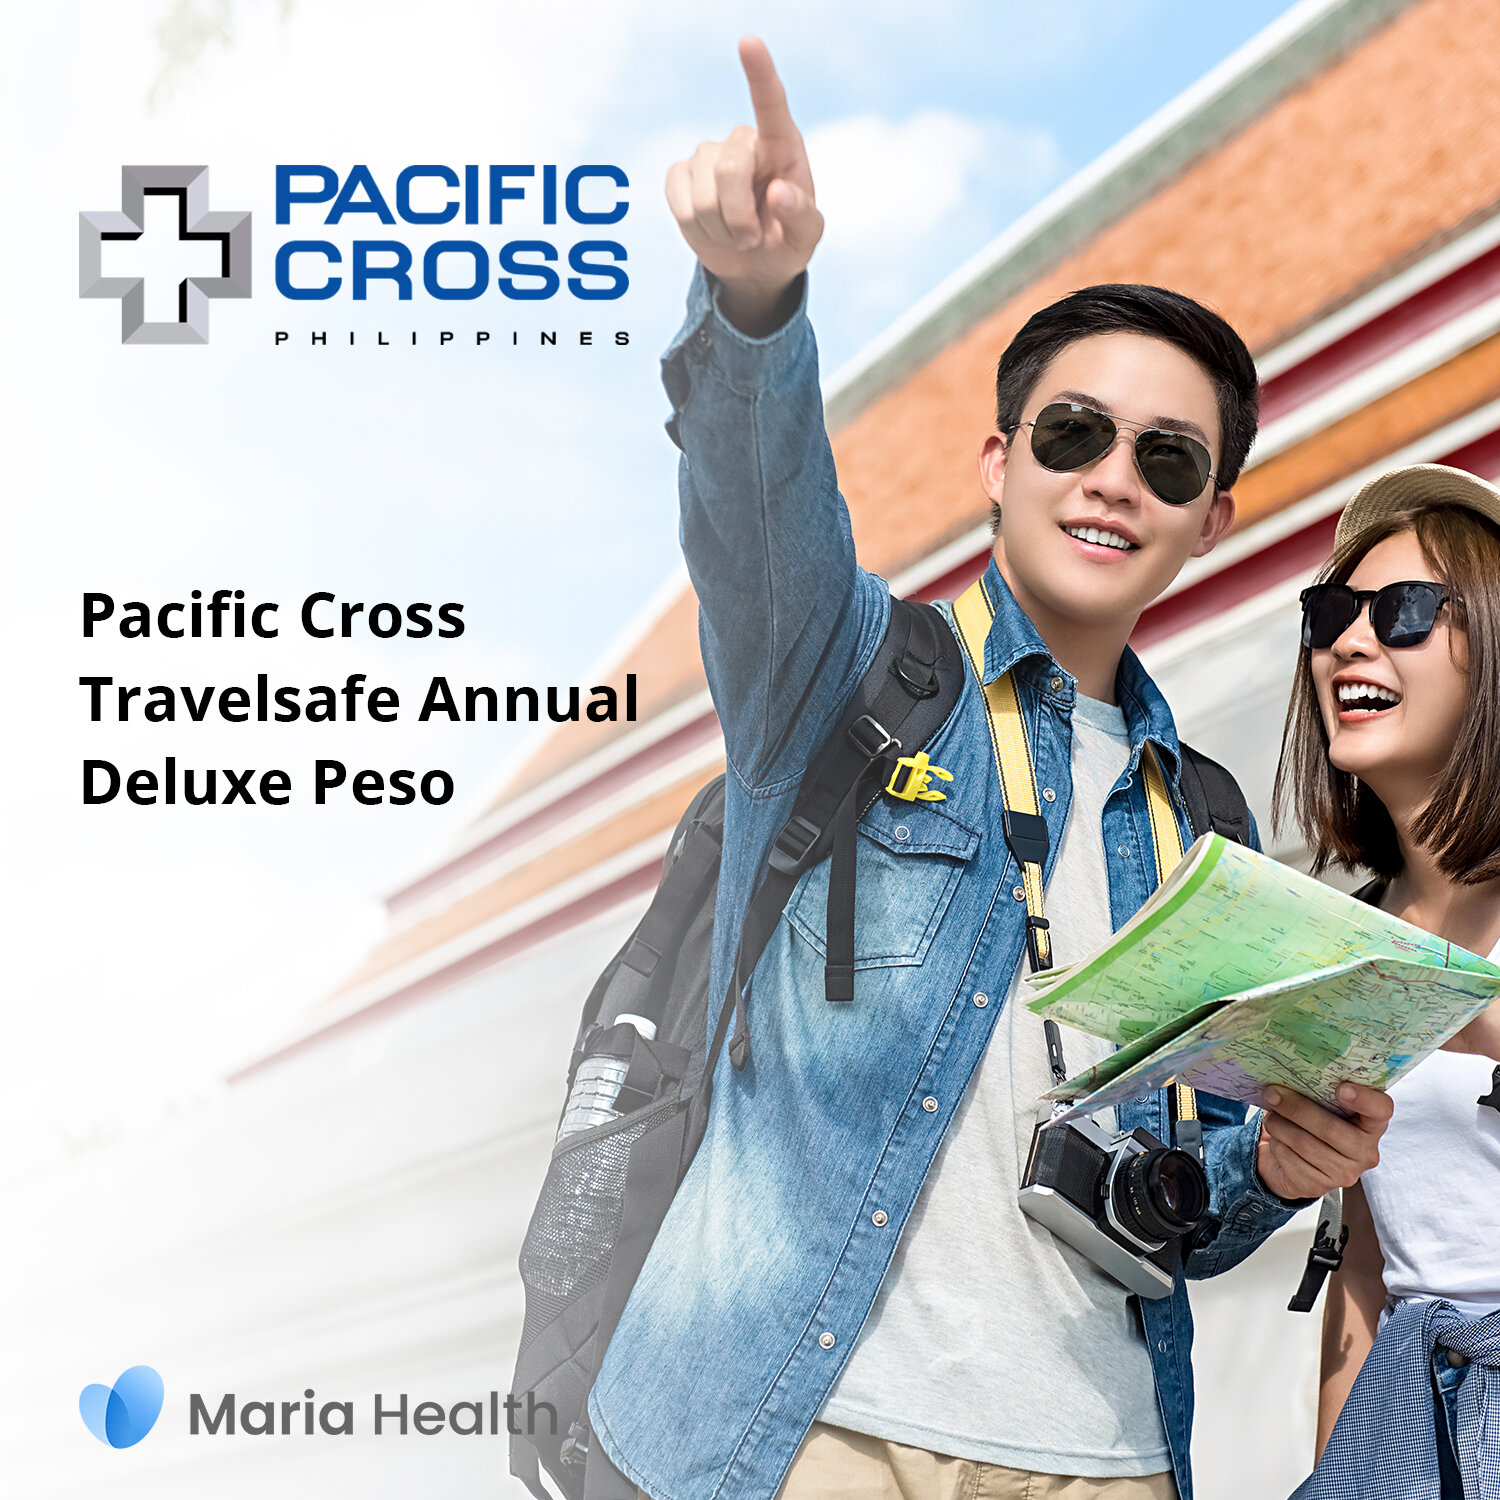 Pacific Cross Travelsafe Annual Deluxe Peso    ₱7,881 one-time payment   The Travelsafe Annual Deluxe Peso is an annual plan that covers medical treatment up to ₱1,000,000 per trip.